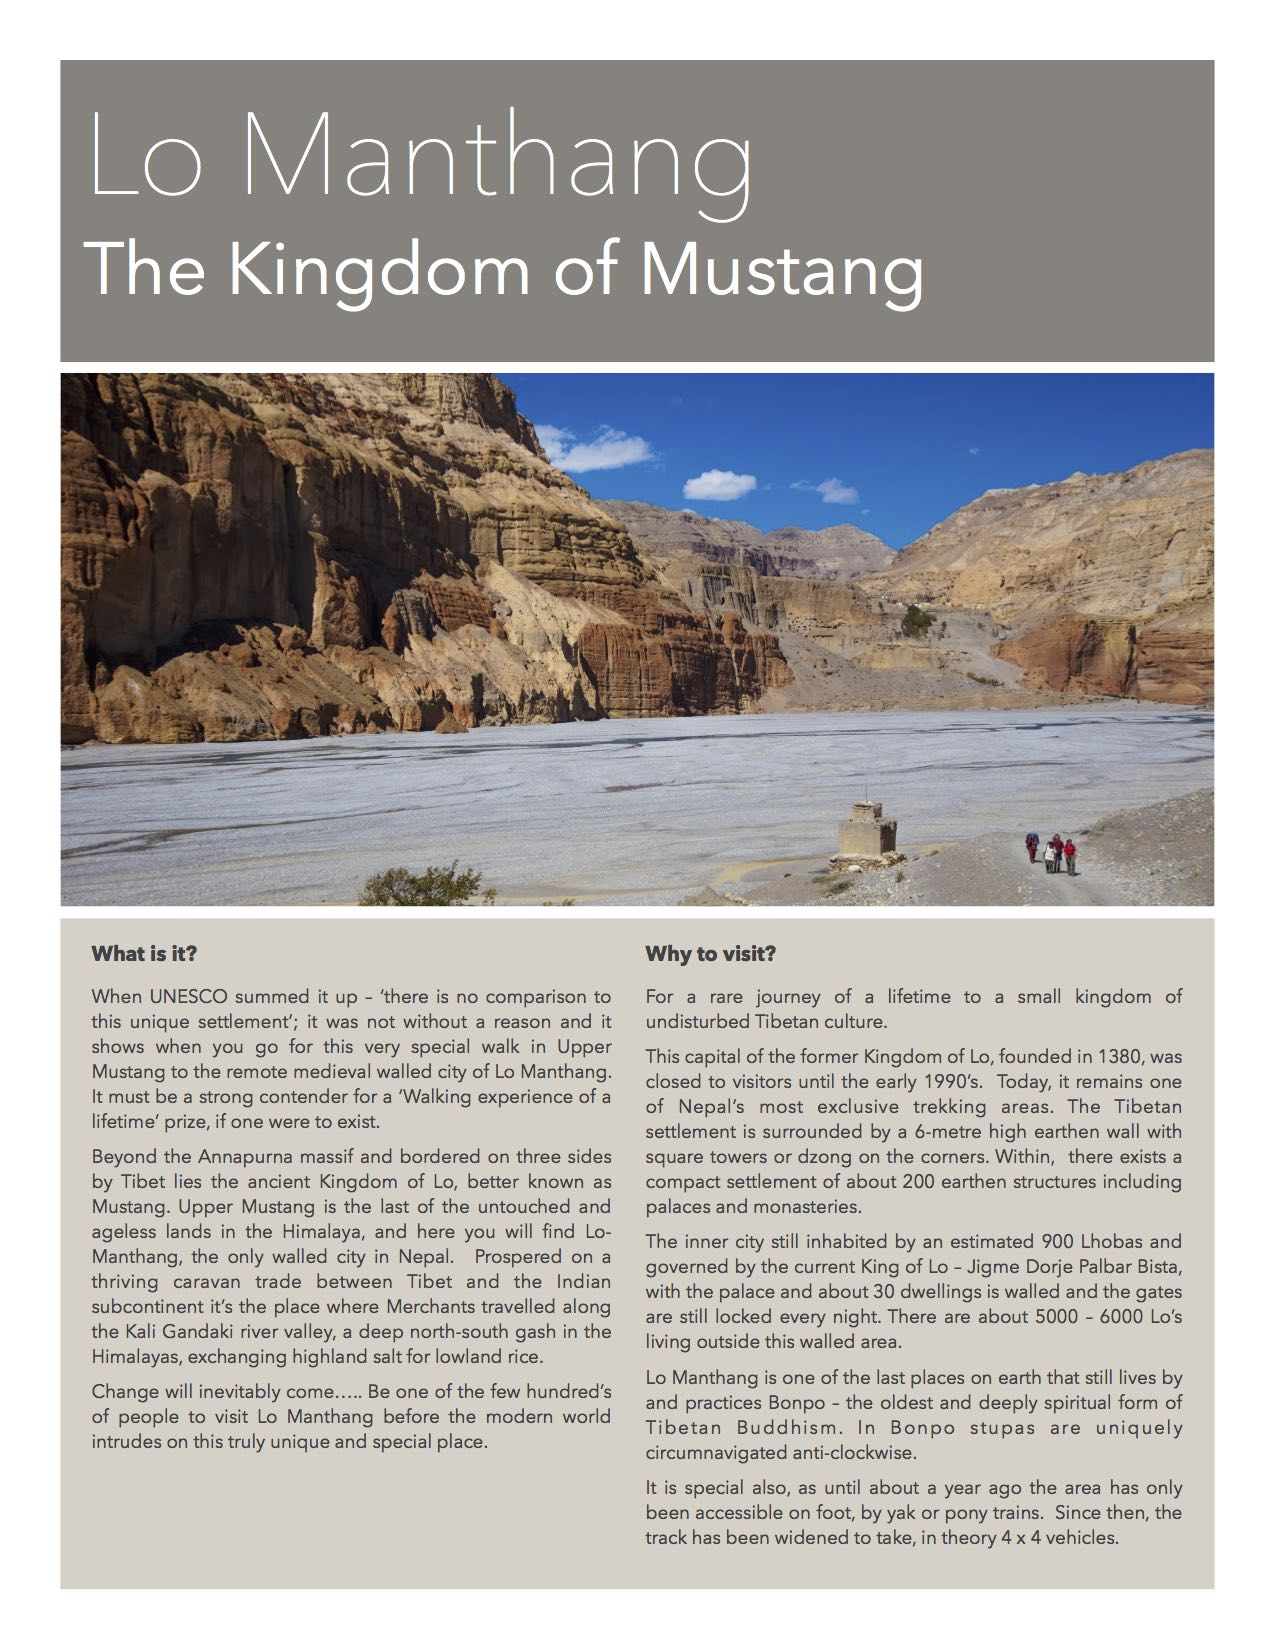 Lo Manthang - Kingdom of Mustang in Nepal